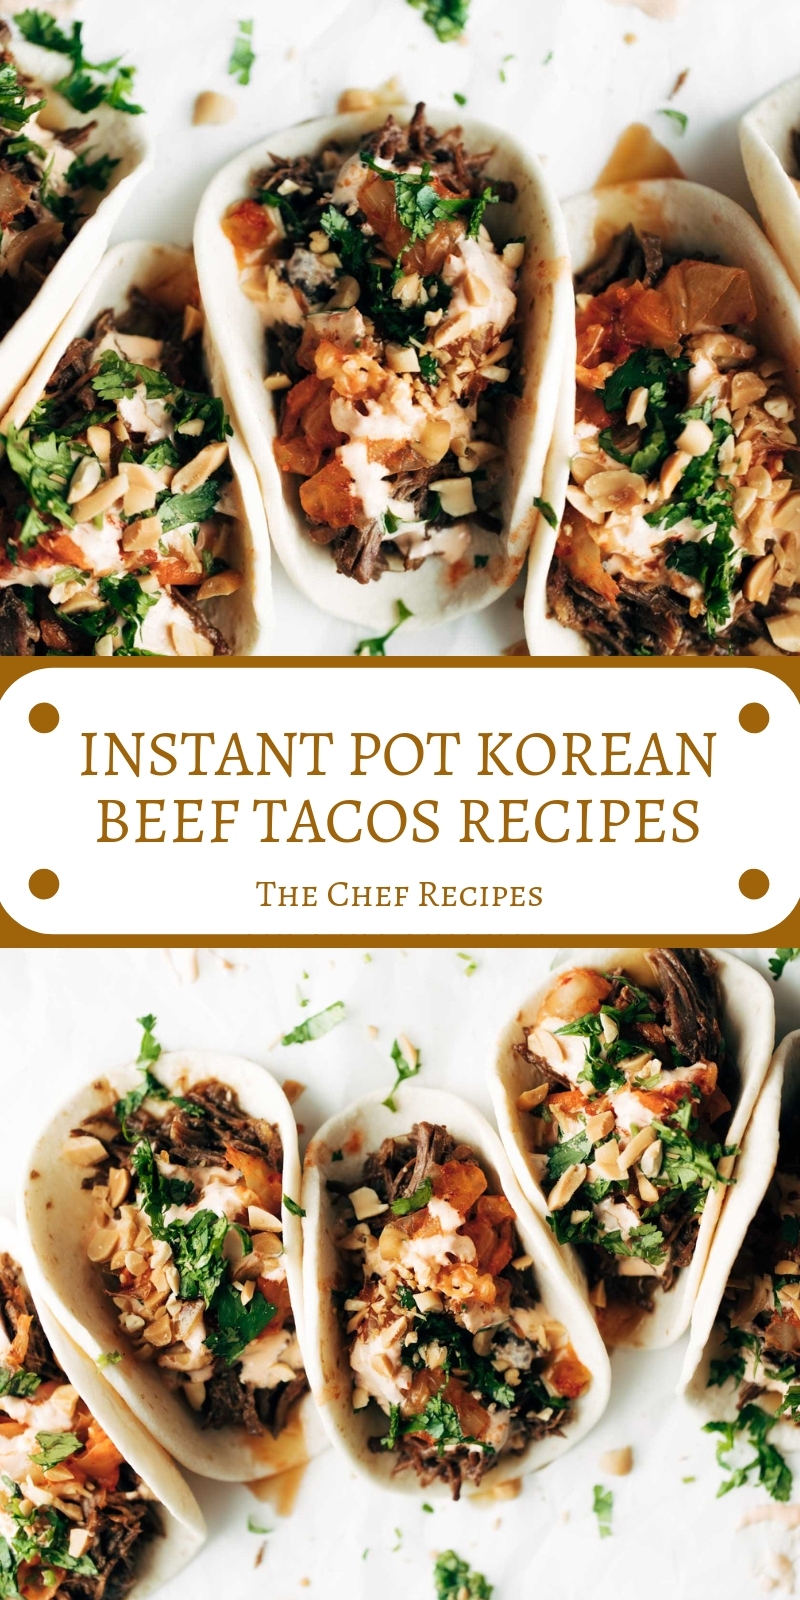 INSTANT POT KOREAN BEEF TACOS RECIPES